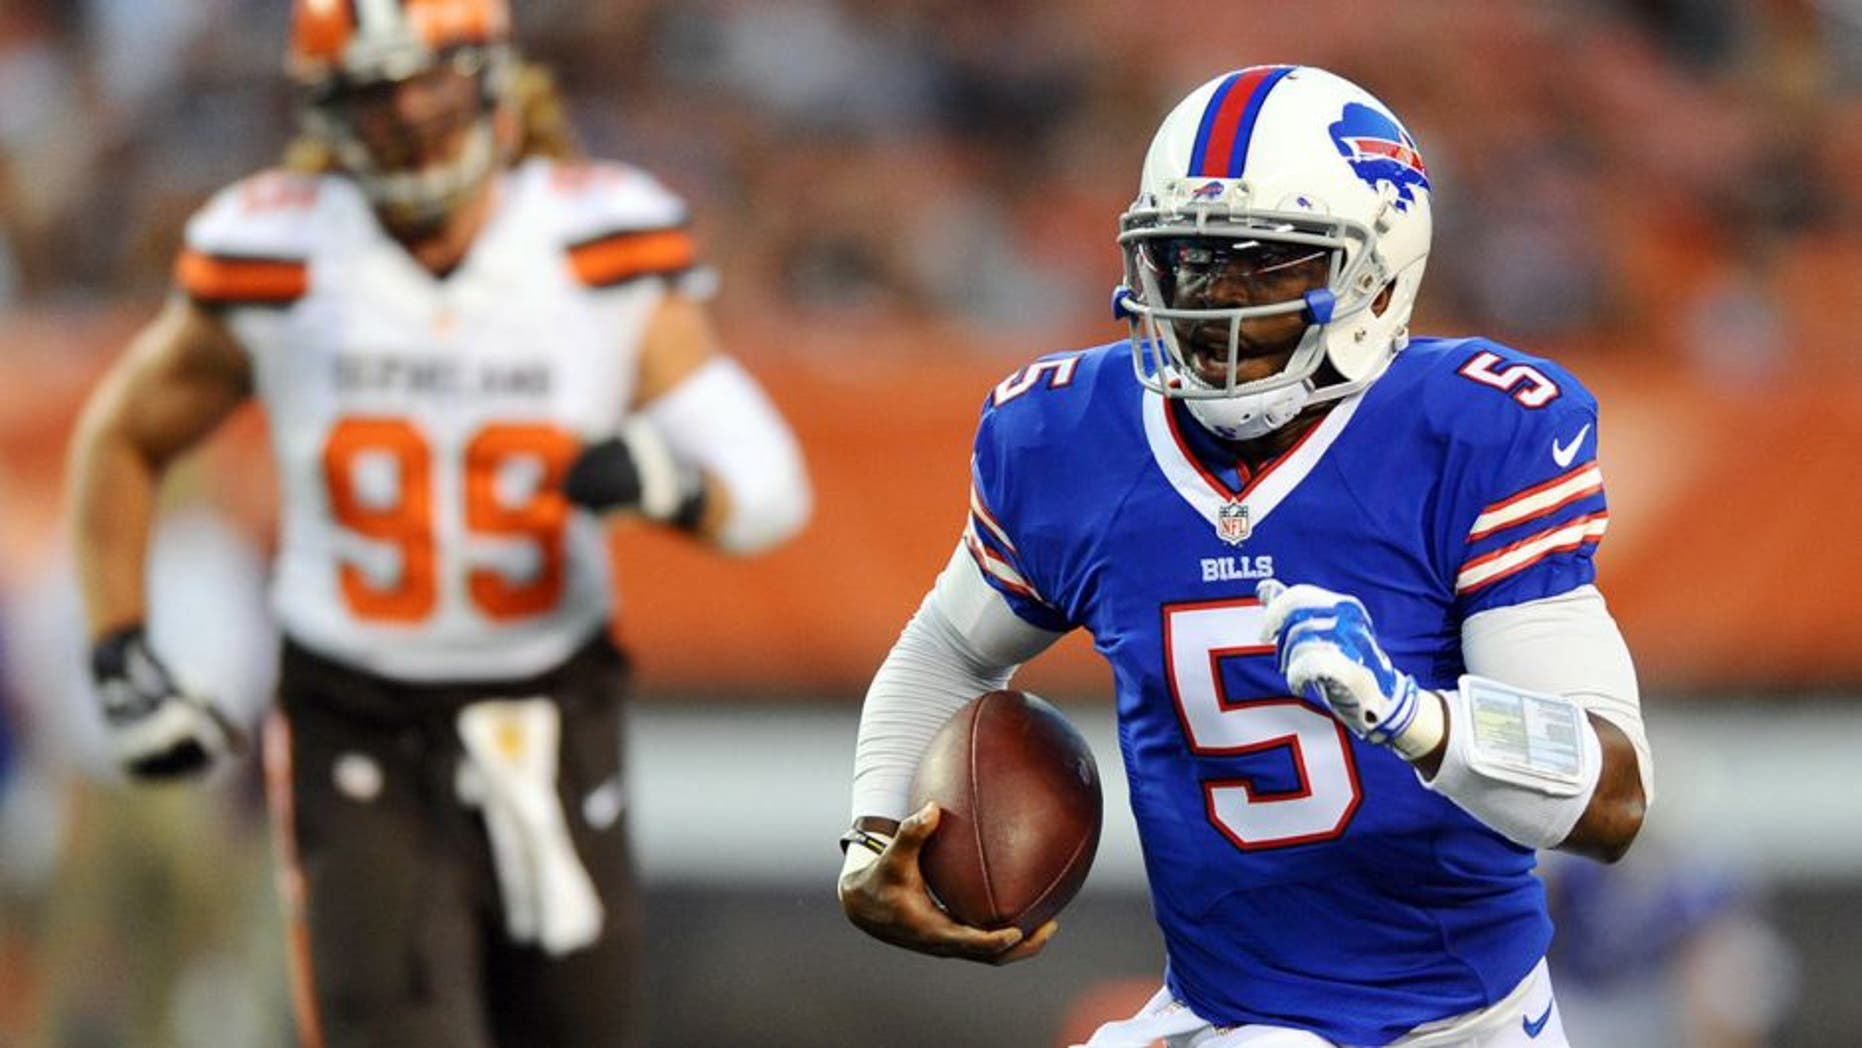 Aug 20, 2015; Cleveland, OH, USA; Buffalo Bills quarterback Tyrod Taylor (5) runs with the ball against the Cleveland Browns during the first quarter at FirstEnergy Stadium. Mandatory Credit: Ken Blaze-USA TODAY Sports